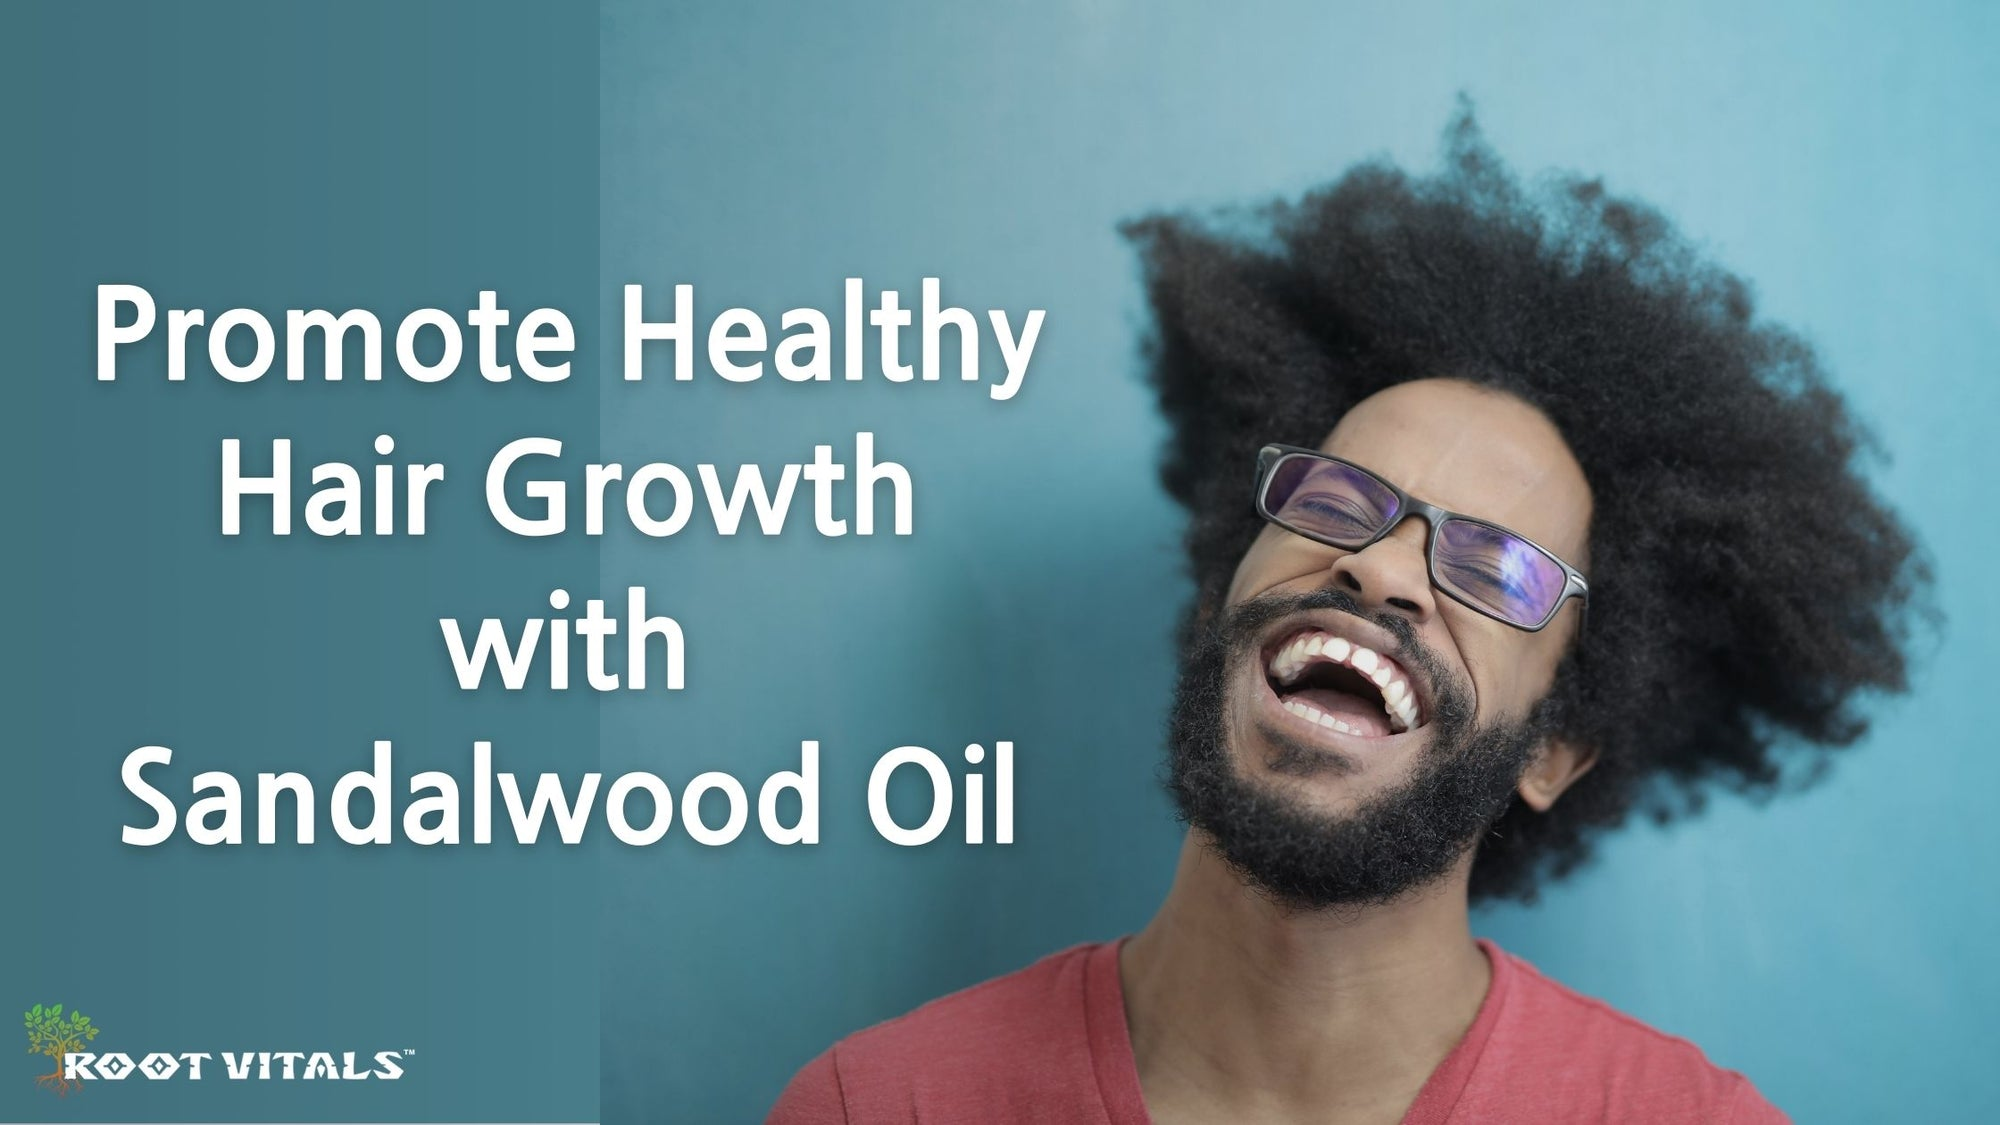 Promote Healthy Hair Growth with Sandalwood Oil